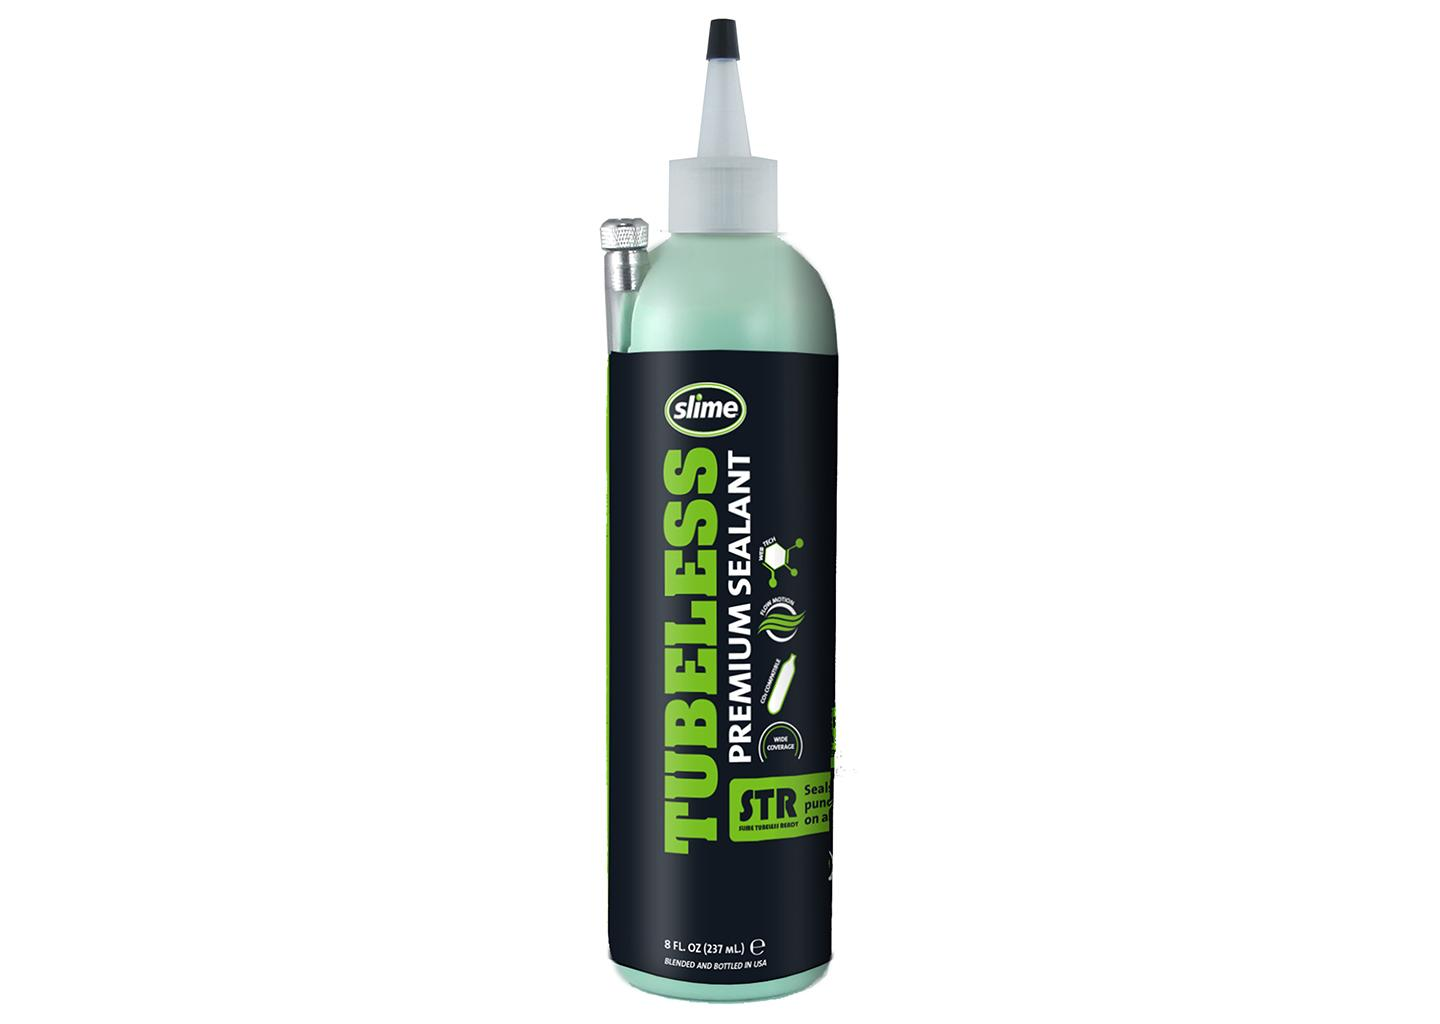 slime, STR Premium Tubeless Sealant / Dichtmittel, CO2-kompatibel, frei von Allergenen, 8 oz. (236ml)